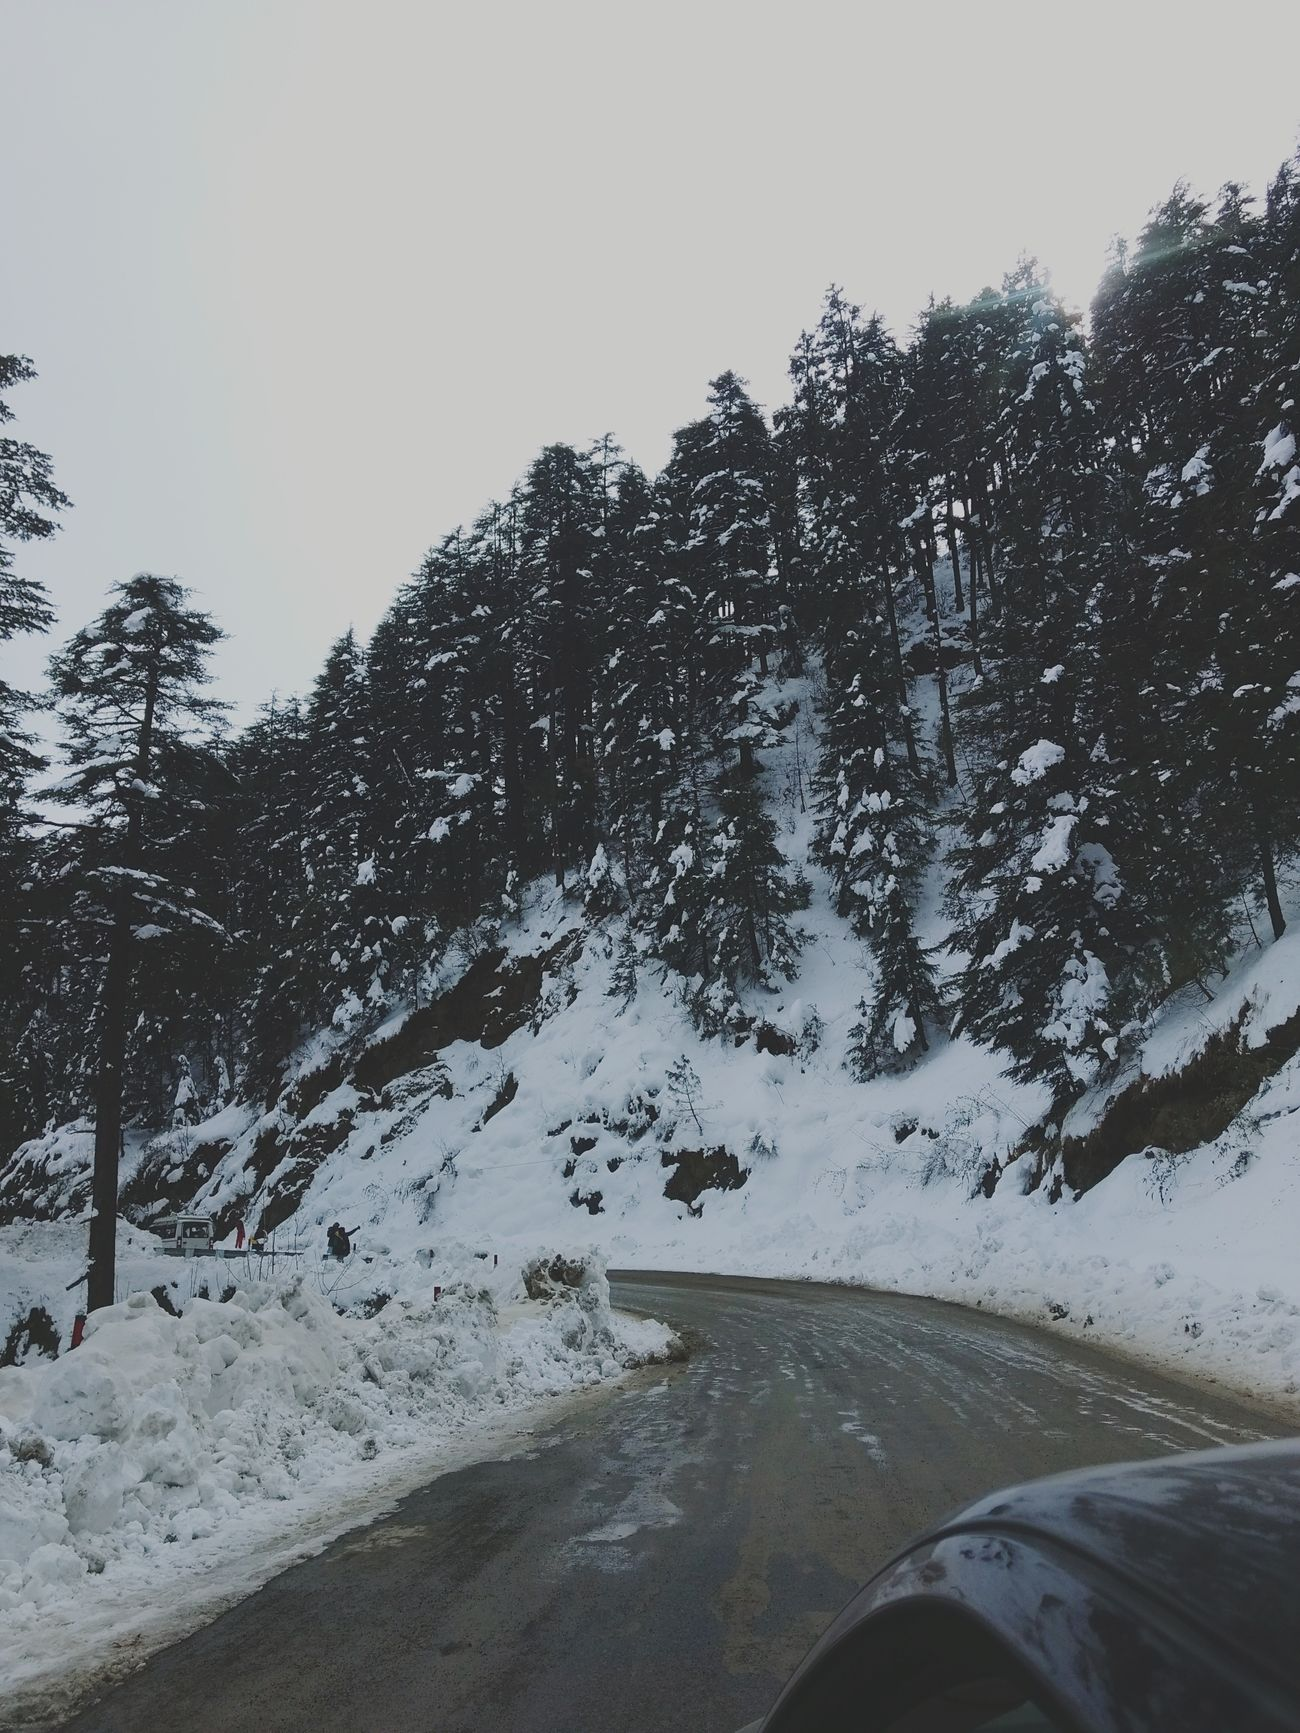 Tree Nature Sky Car Snow Outdoors Day Winter Beauty In Nature Cold Temperature Scenics Nature Mountain Landscape Ontheroad Pine Tree Environment Beauty In Nature Travelling Photography Lush Foliage No People Tree Forest